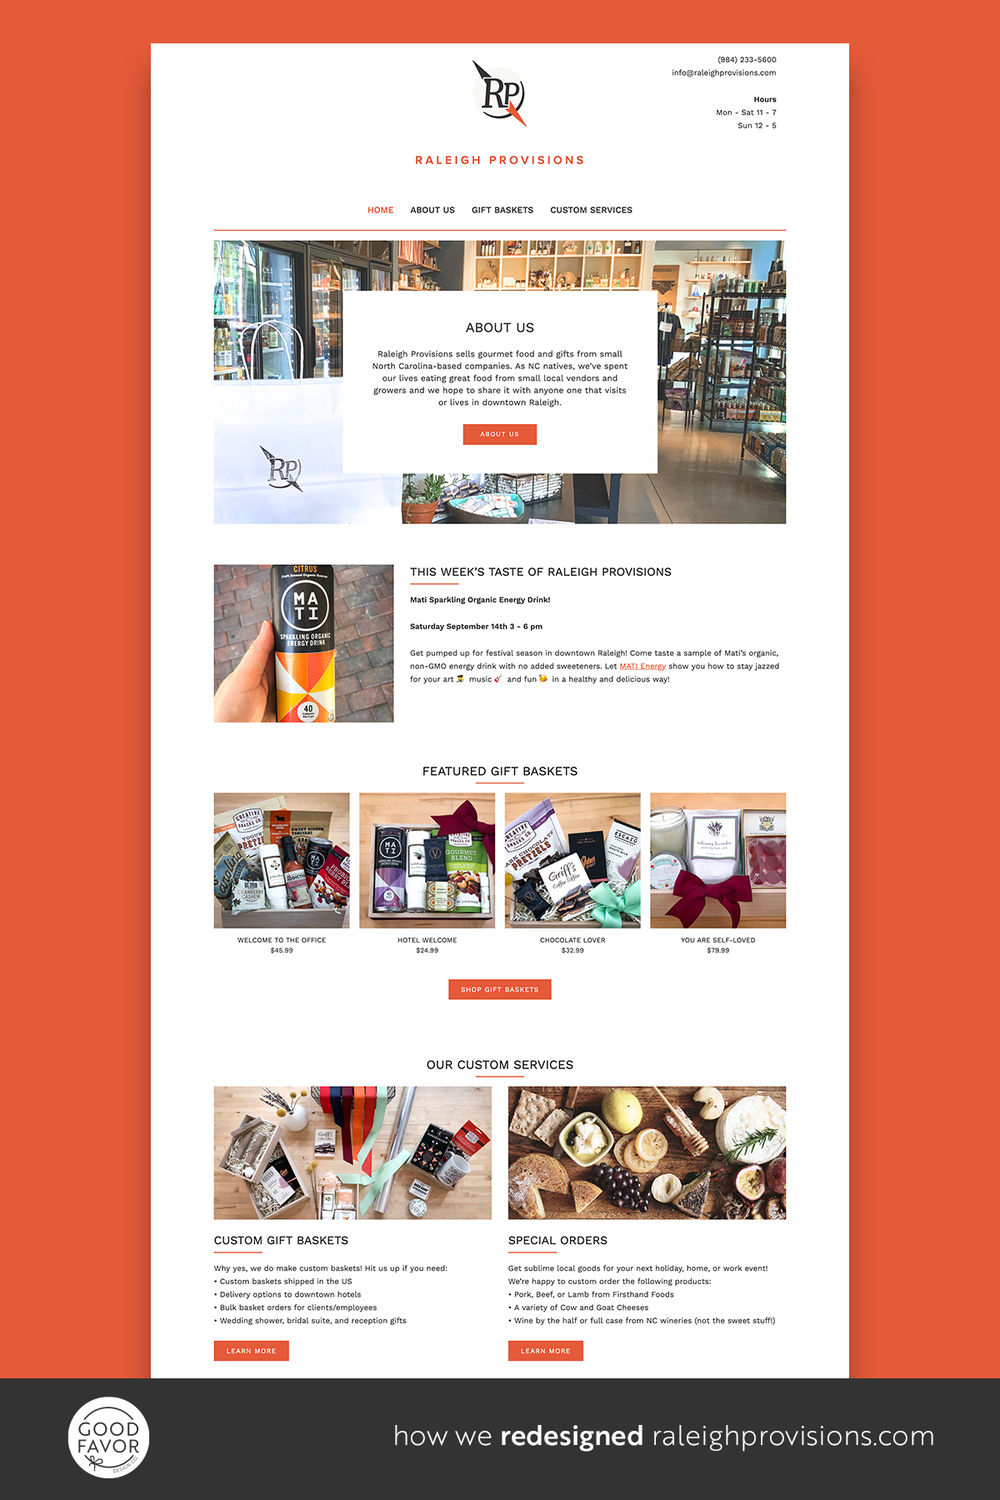 How we redesigned raleighprovisions.com